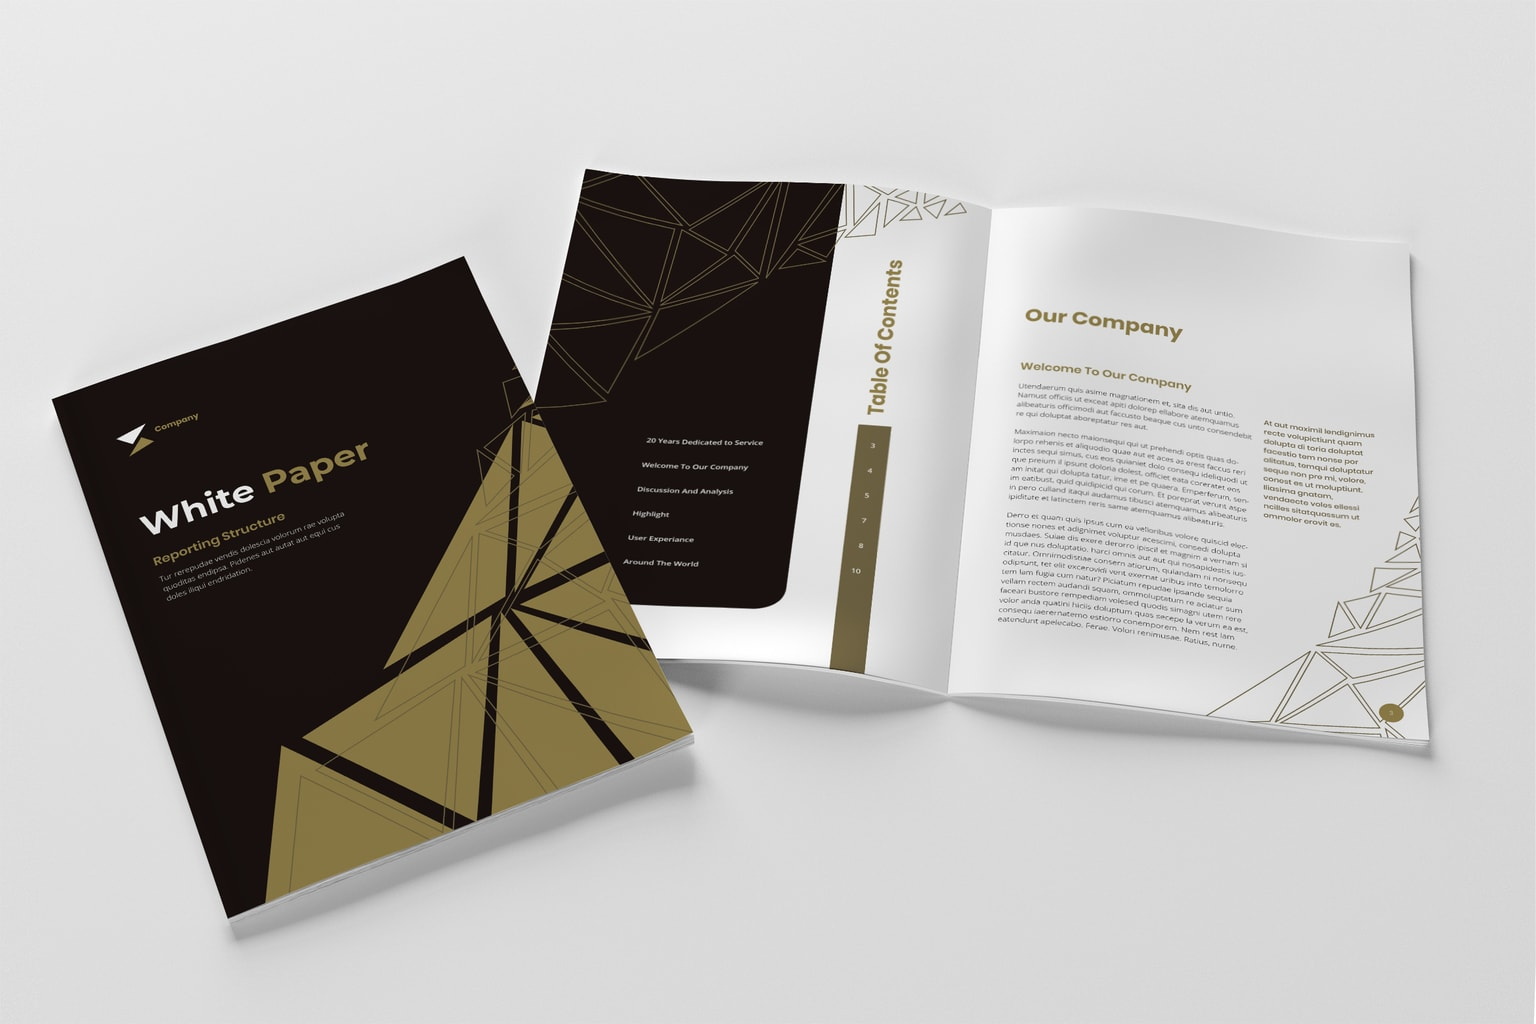 White Paper - Company Annual Report